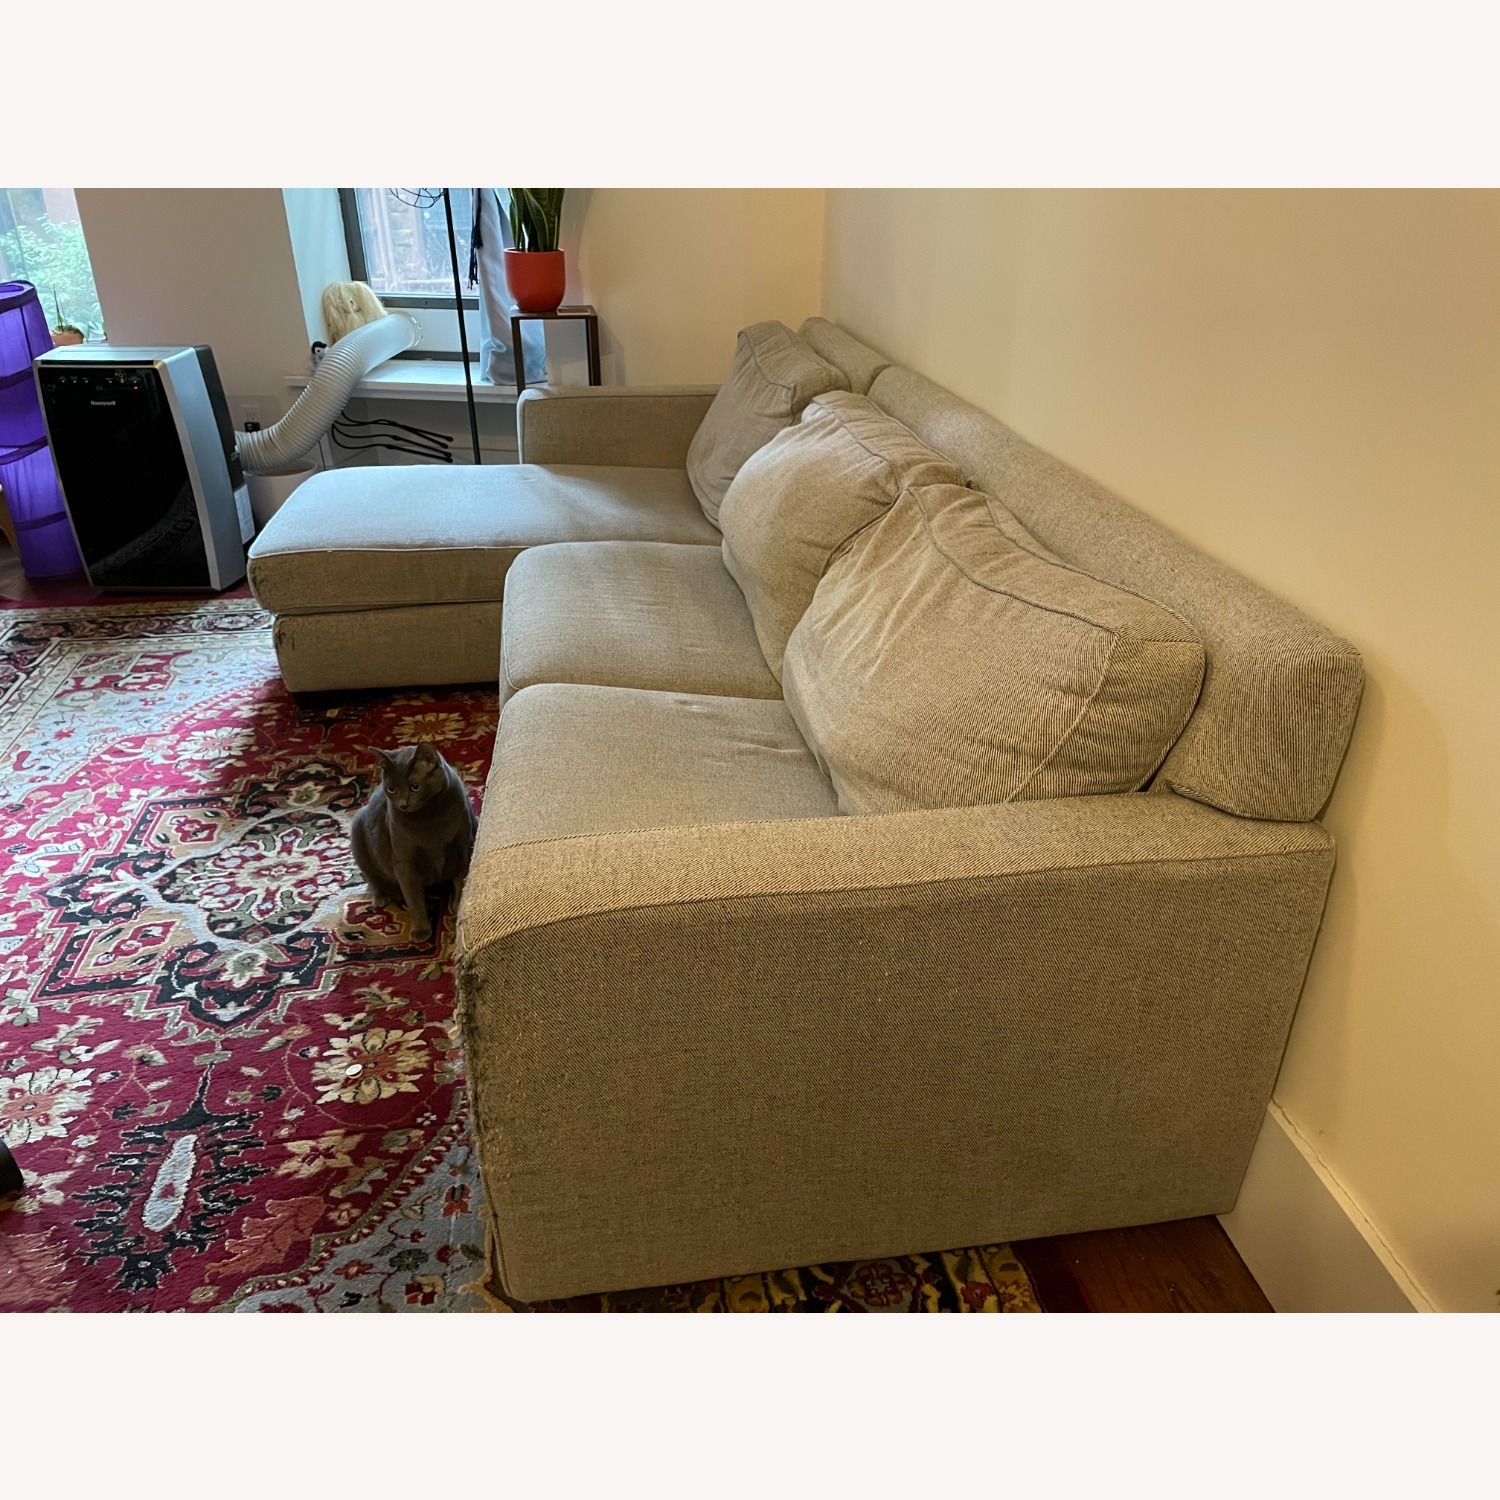 West Elm Gray Henry Sleeper Sofa with Chaise - image-3